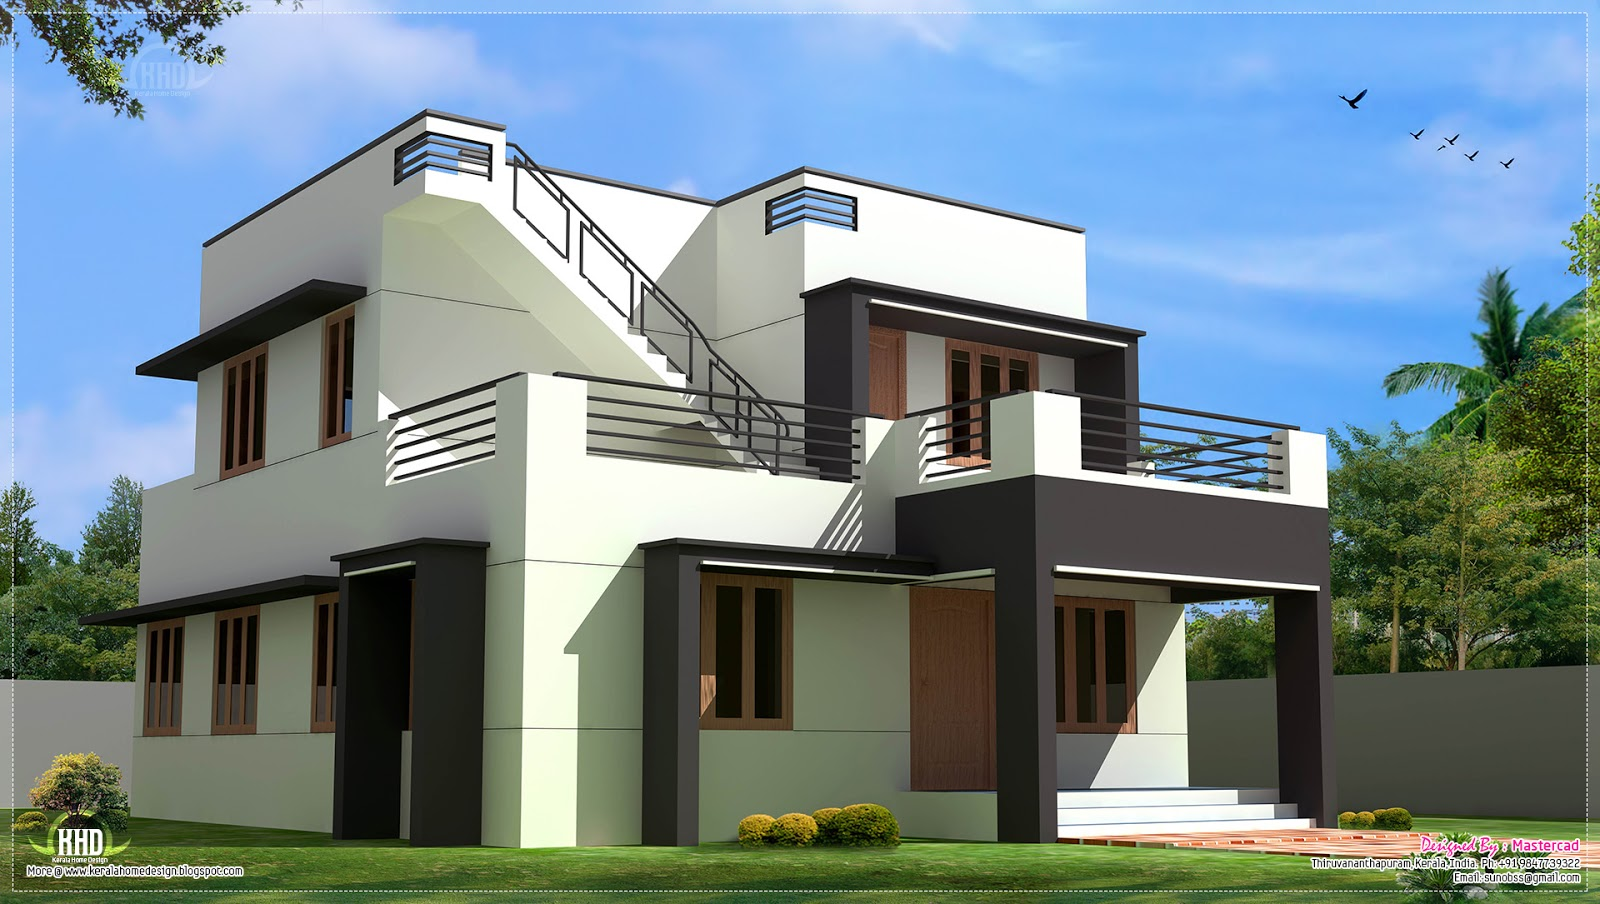 Modern house design in 1700 kerala home design for Good house plans and designs